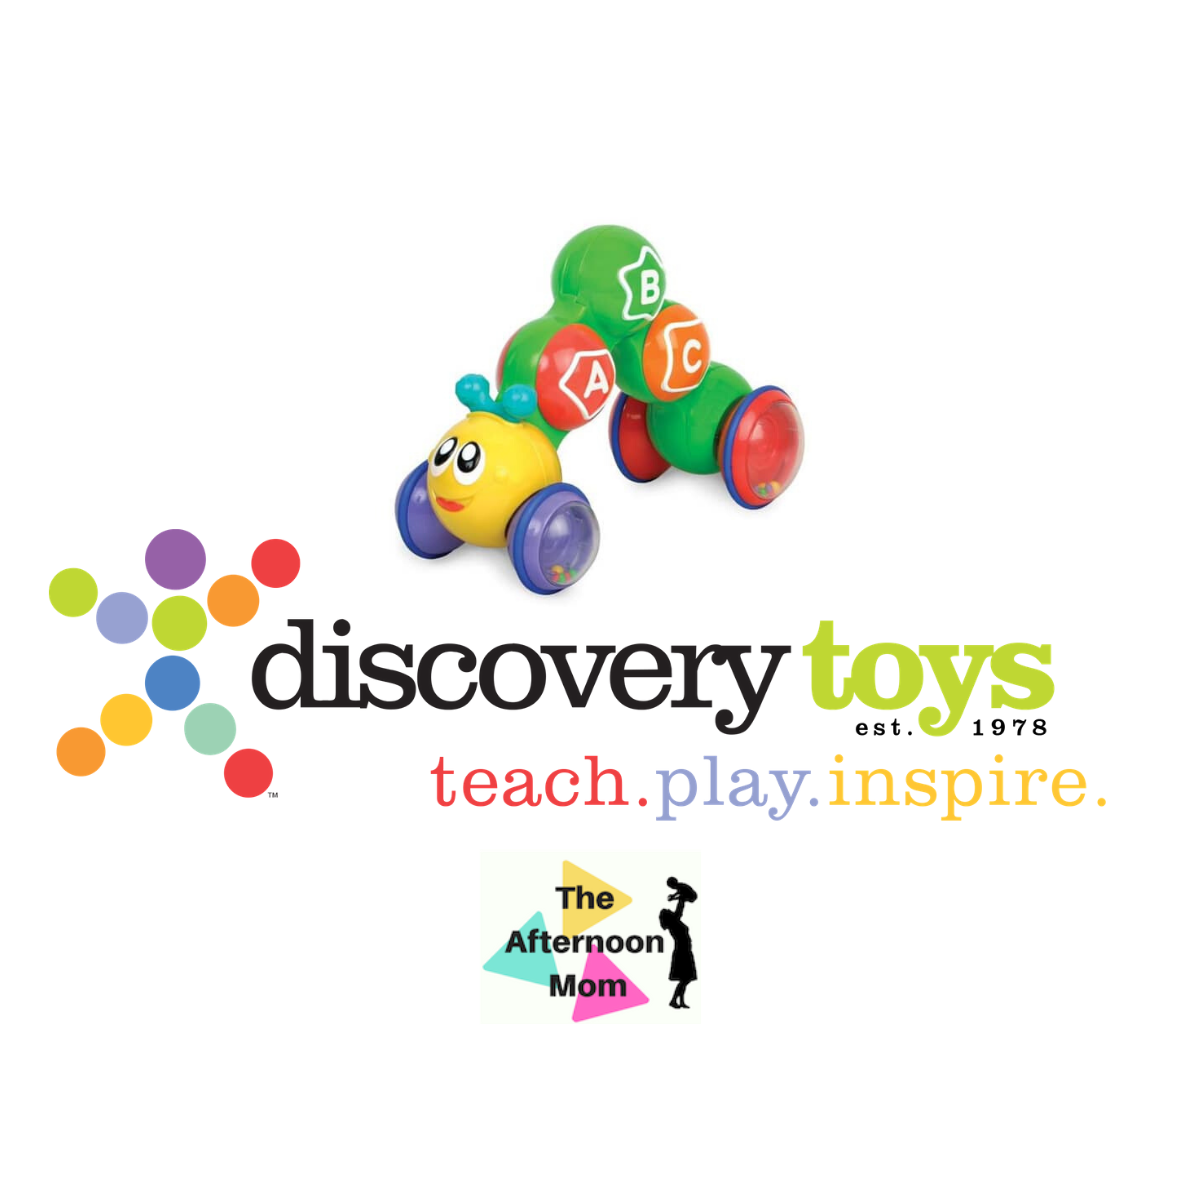 The Afternoon Mom Discovery Toys